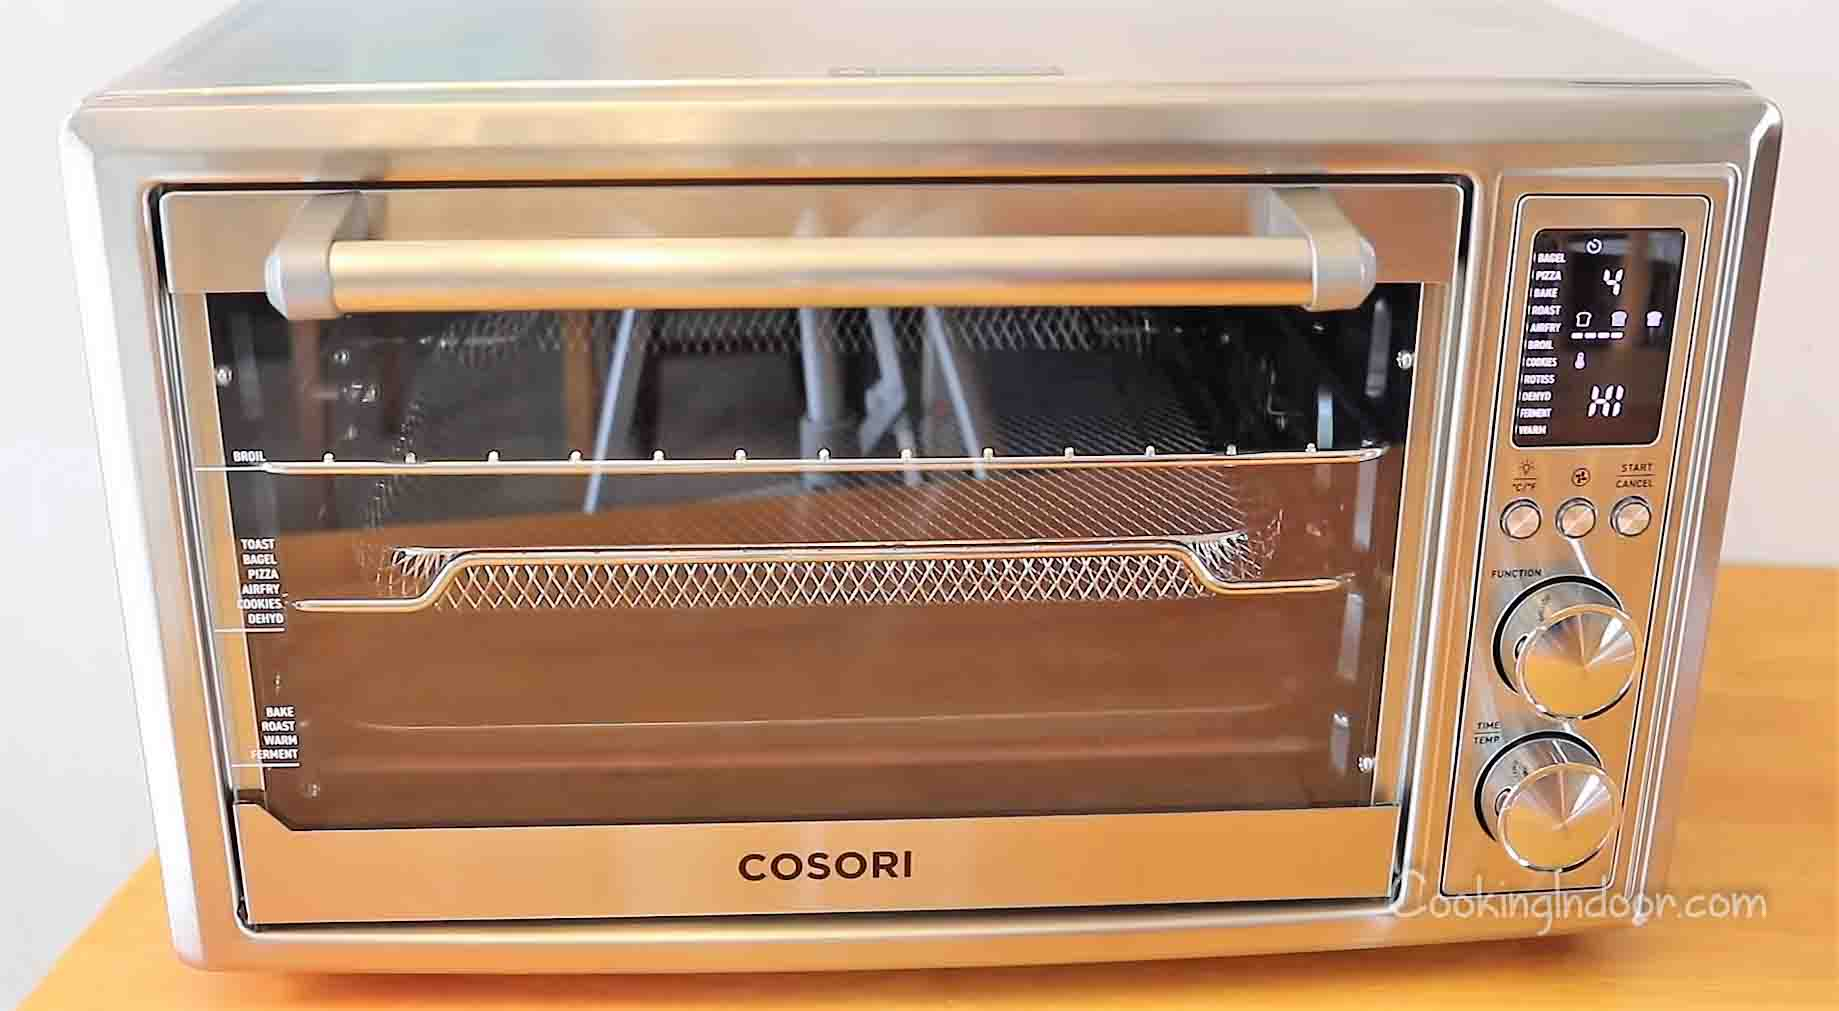 Best industrial toaster oven